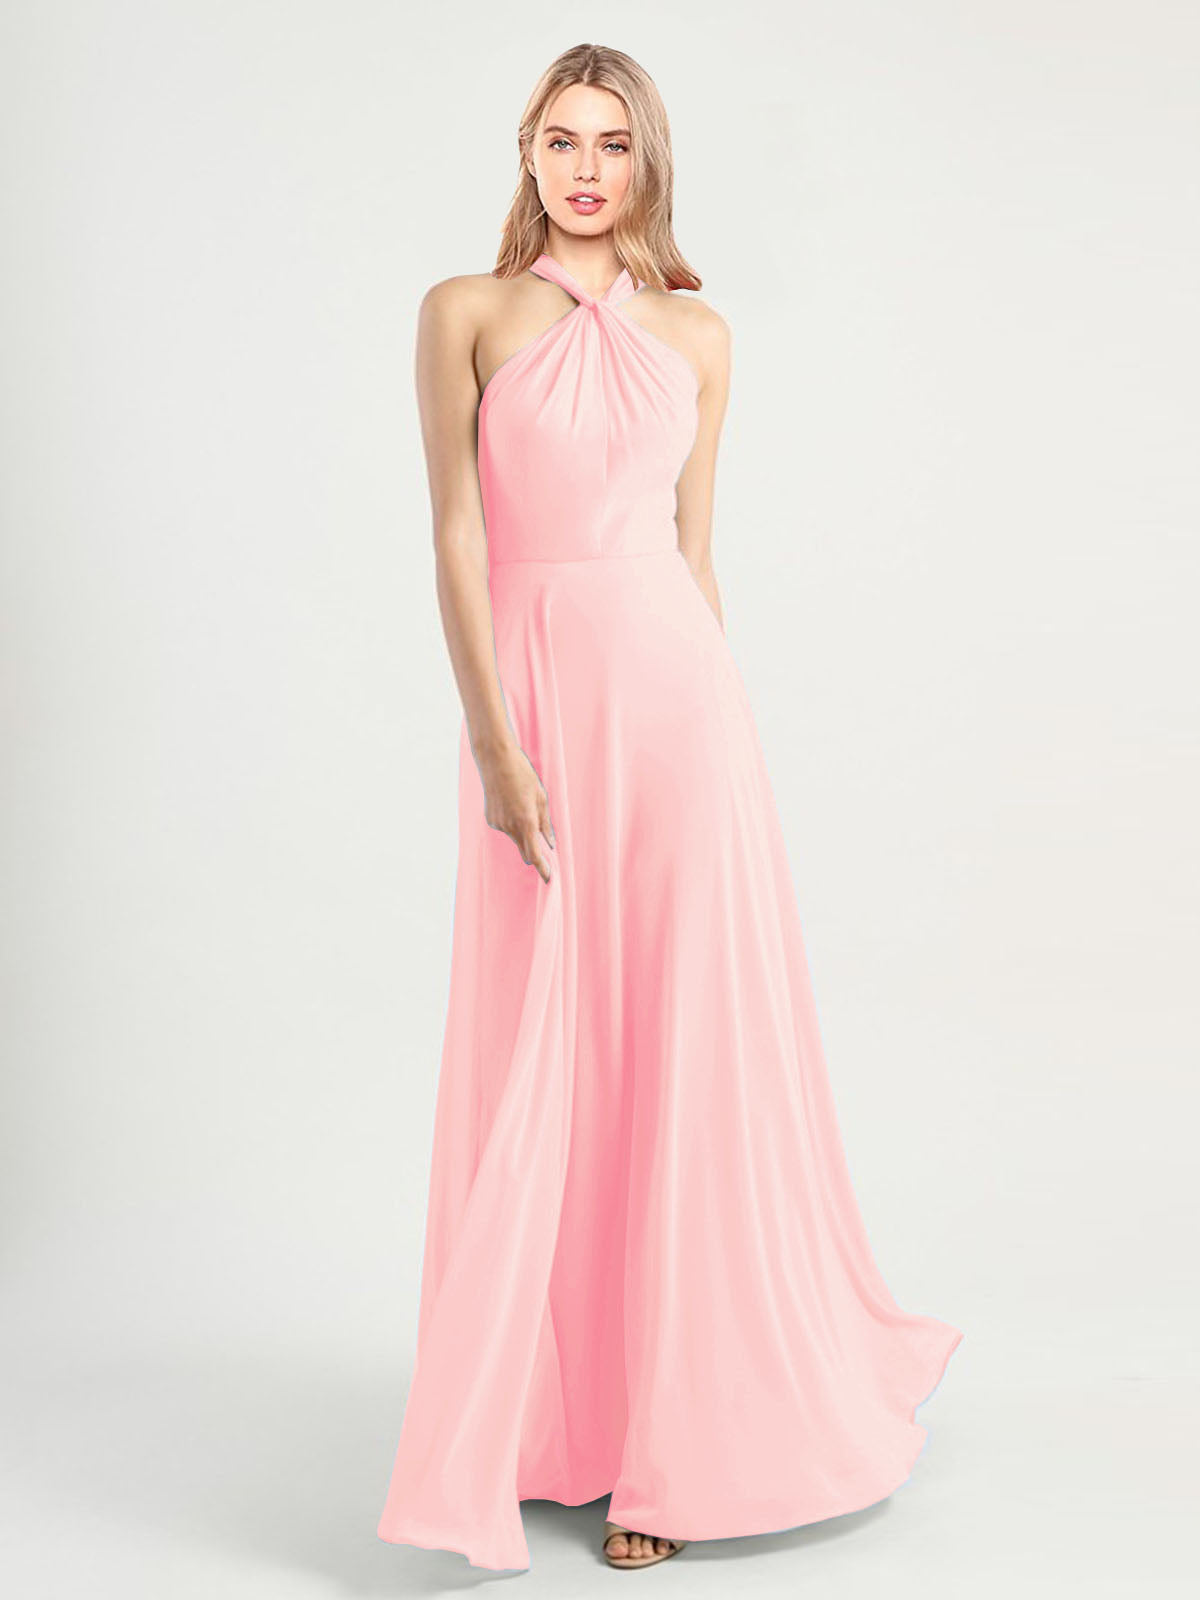 Long A-Line High Neck, Halter Sleeveless Pink Chiffon Bridesmaid Dress Yoli